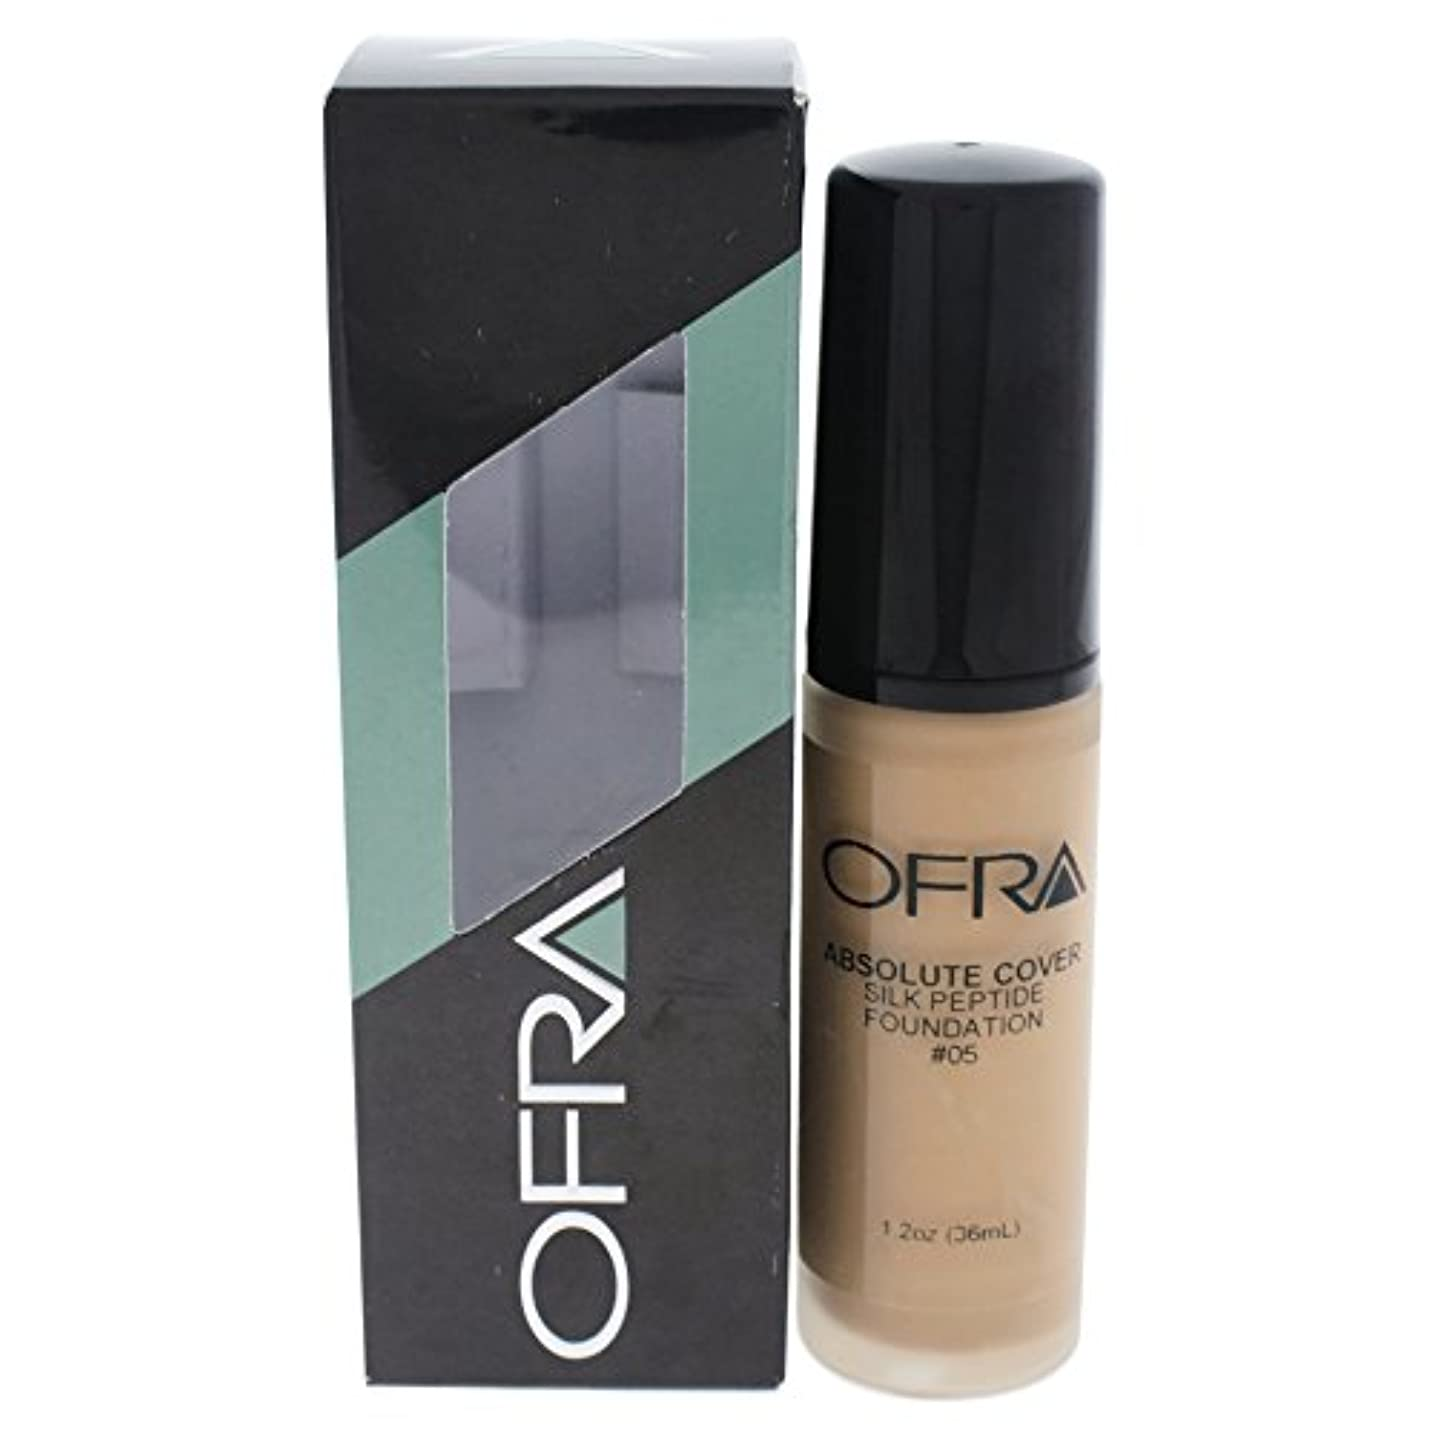 Absolute Cover Silk Peptide Foundation - 5